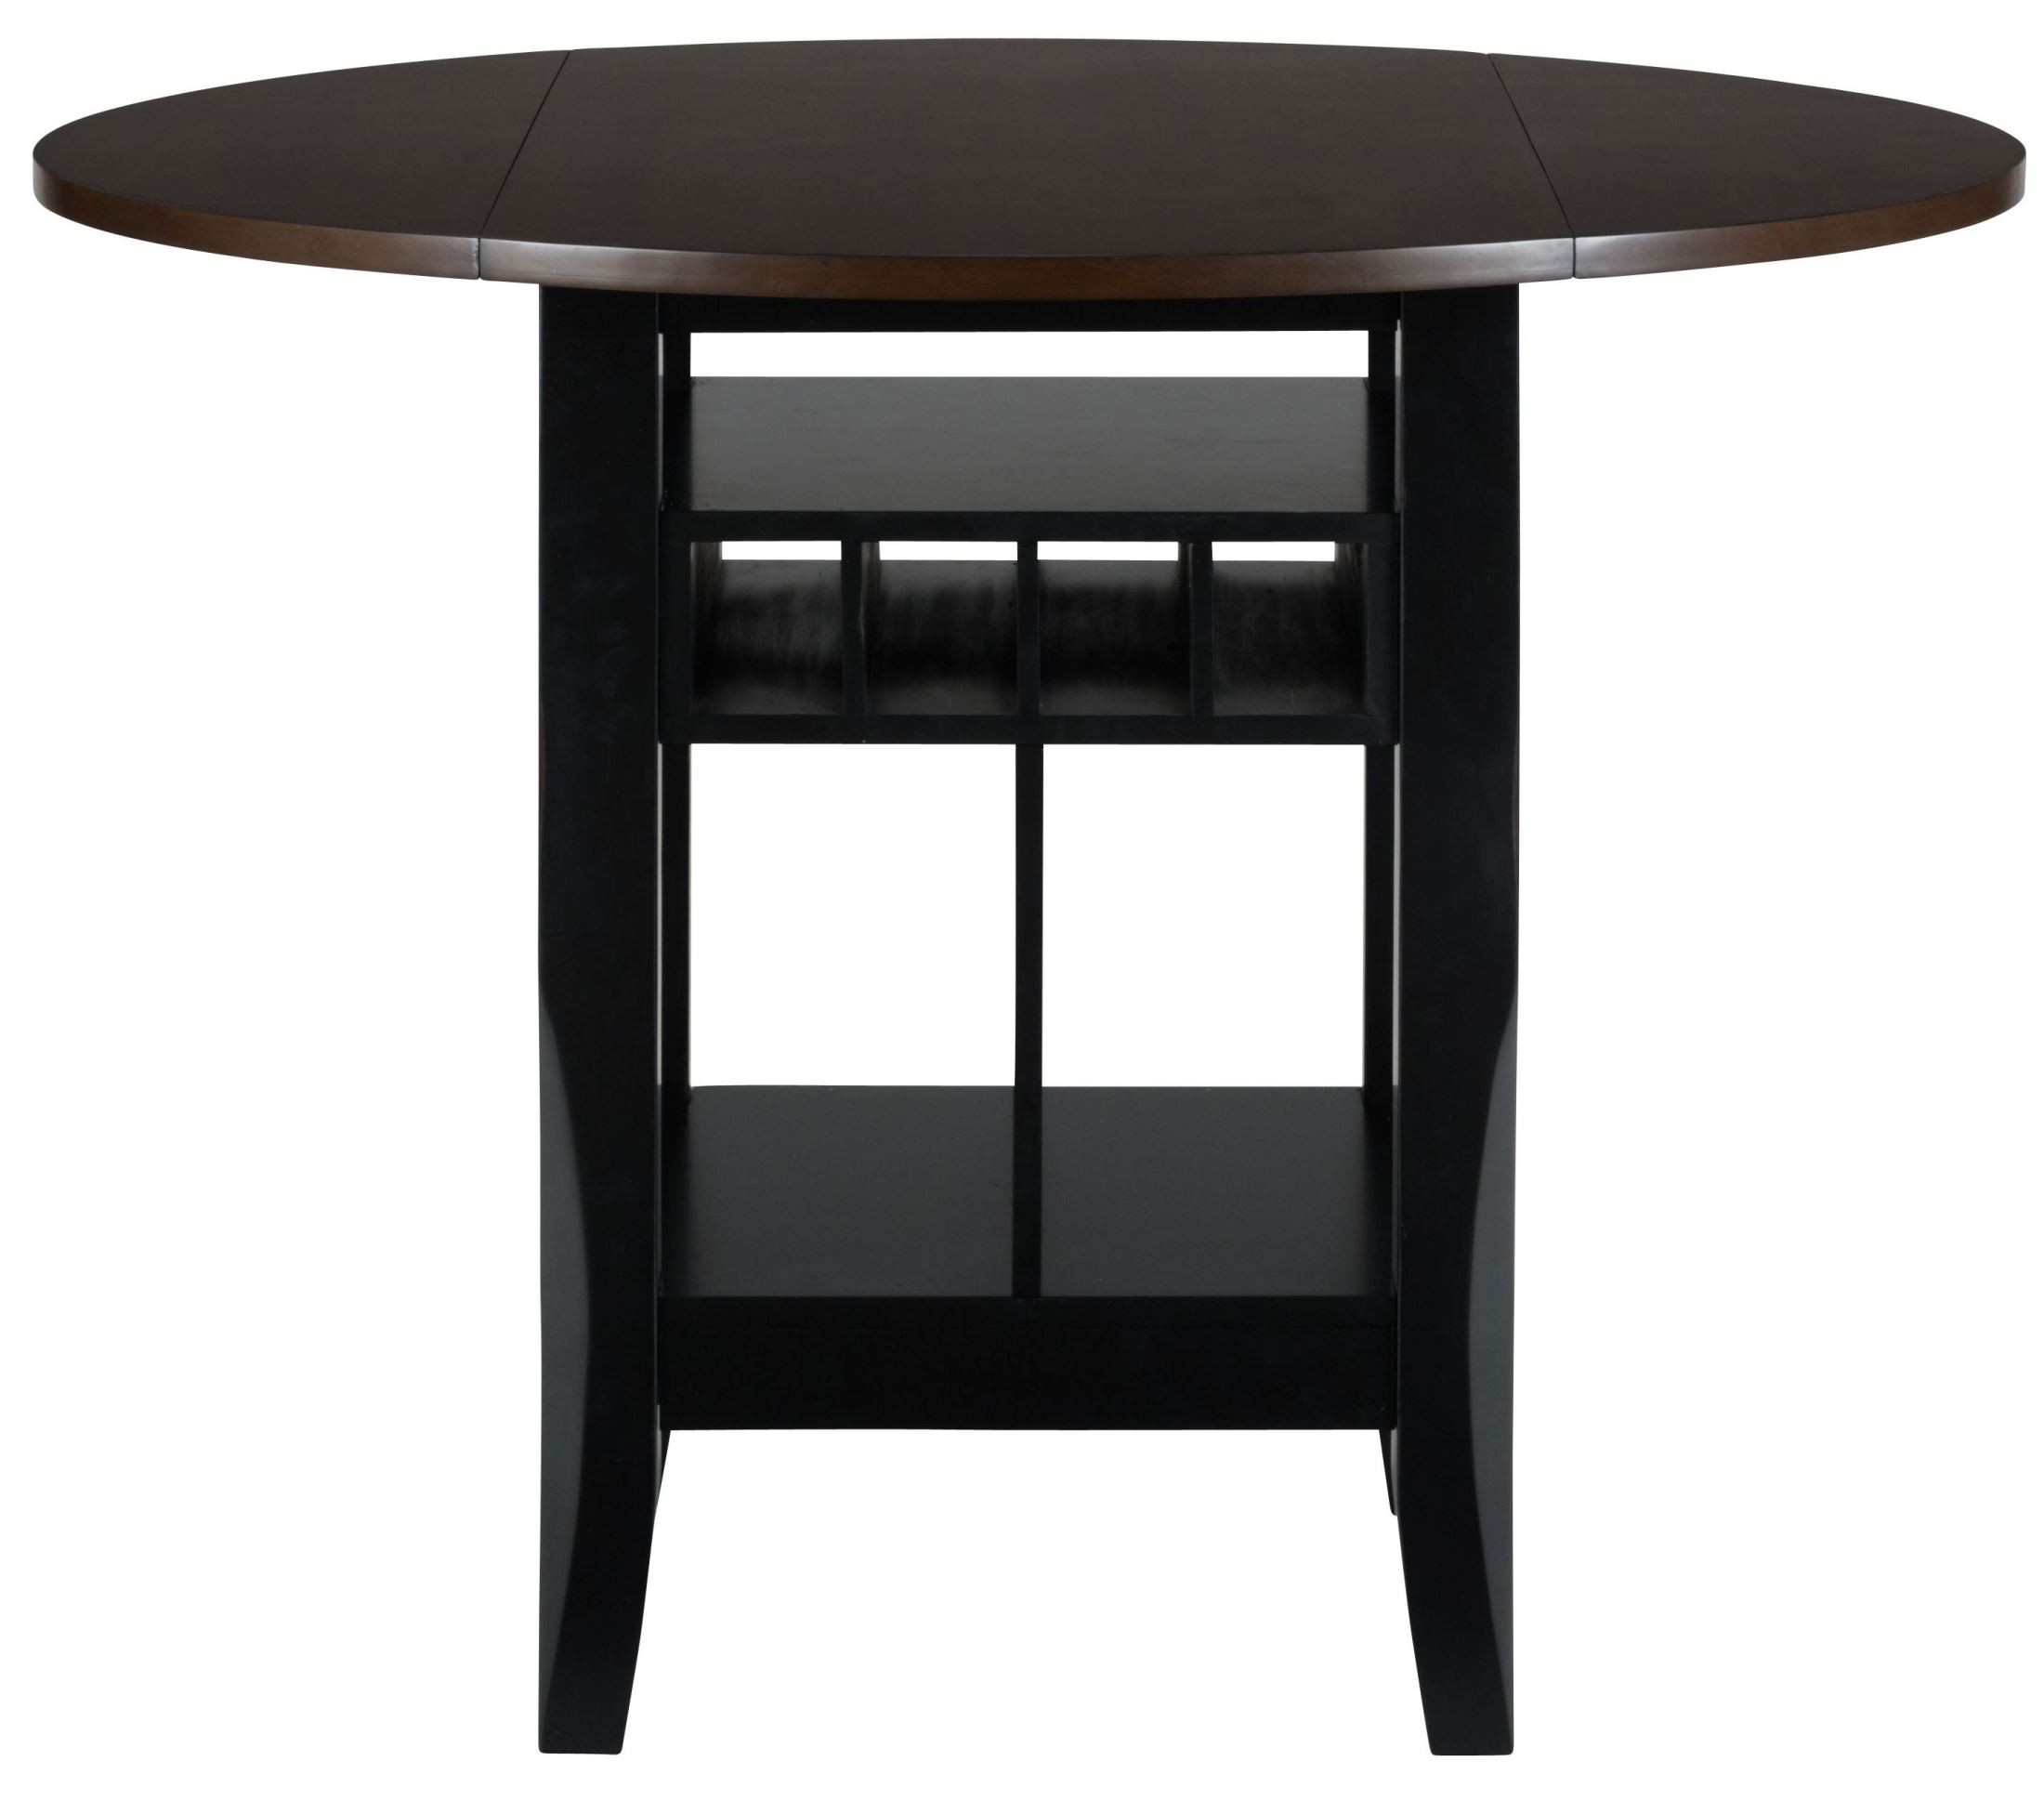 Braden Antique Black 48quot Round Extendable Drop Leaf  : 272 48front from colemanfurniture.com size 2200 x 1952 jpeg 164kB